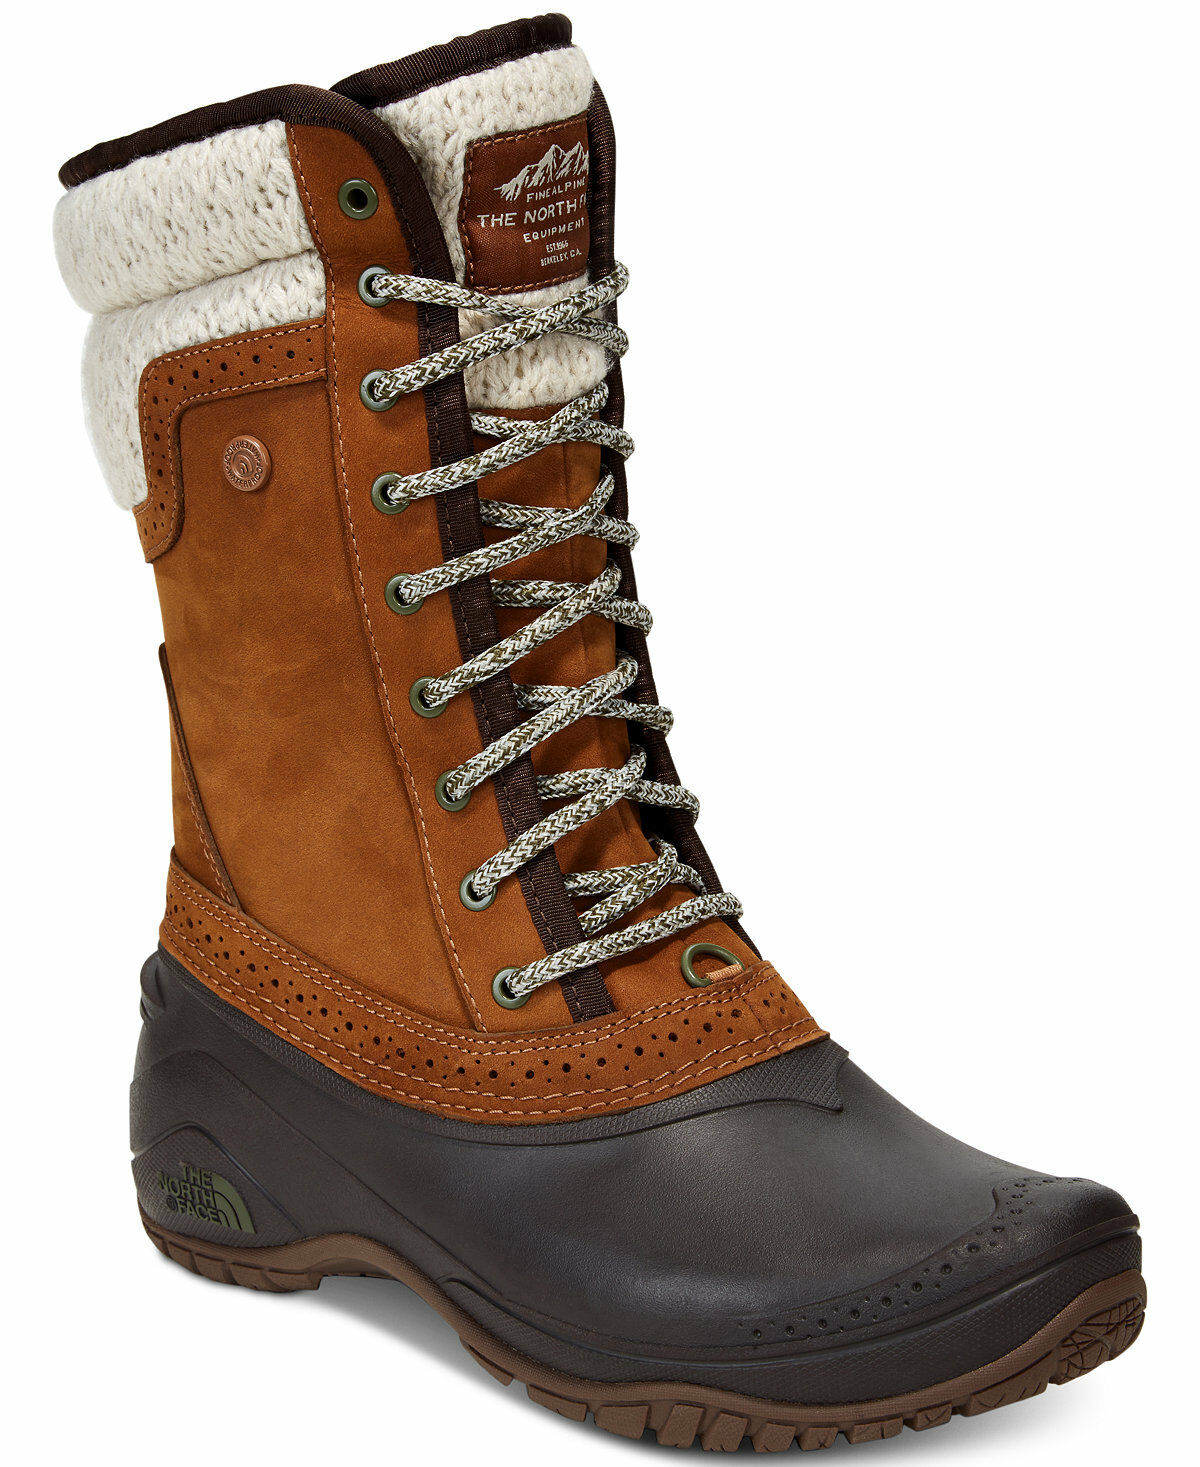 Women's Shellista II Mid - Dachshund Brown/Demistasse Brown